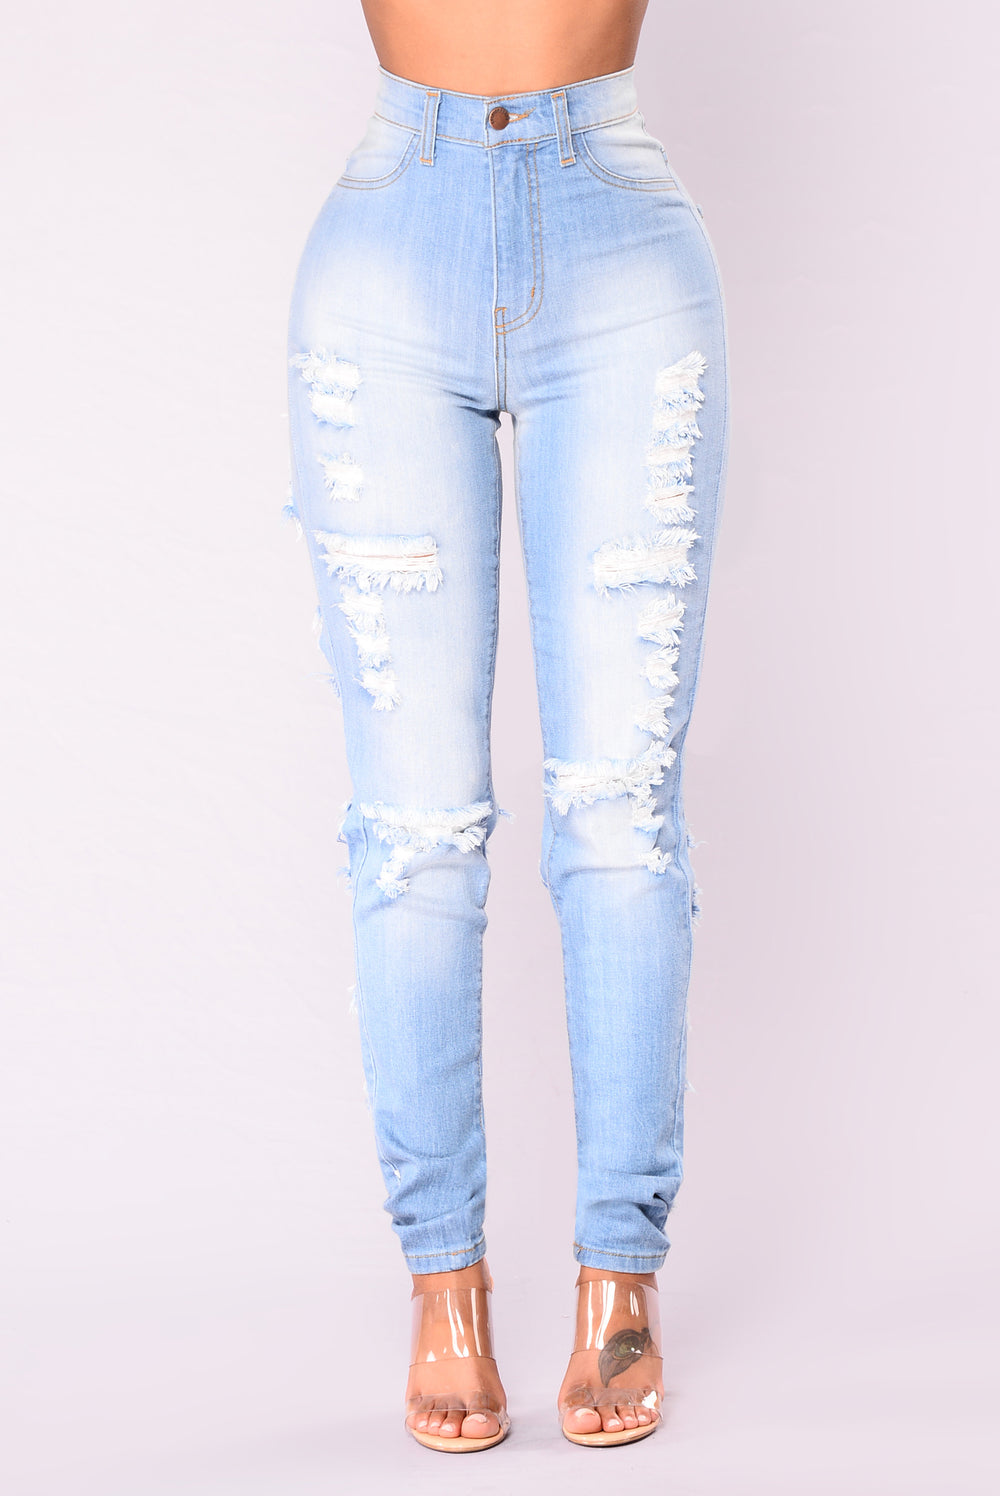 Shred And Slay Jeans - Light Blue